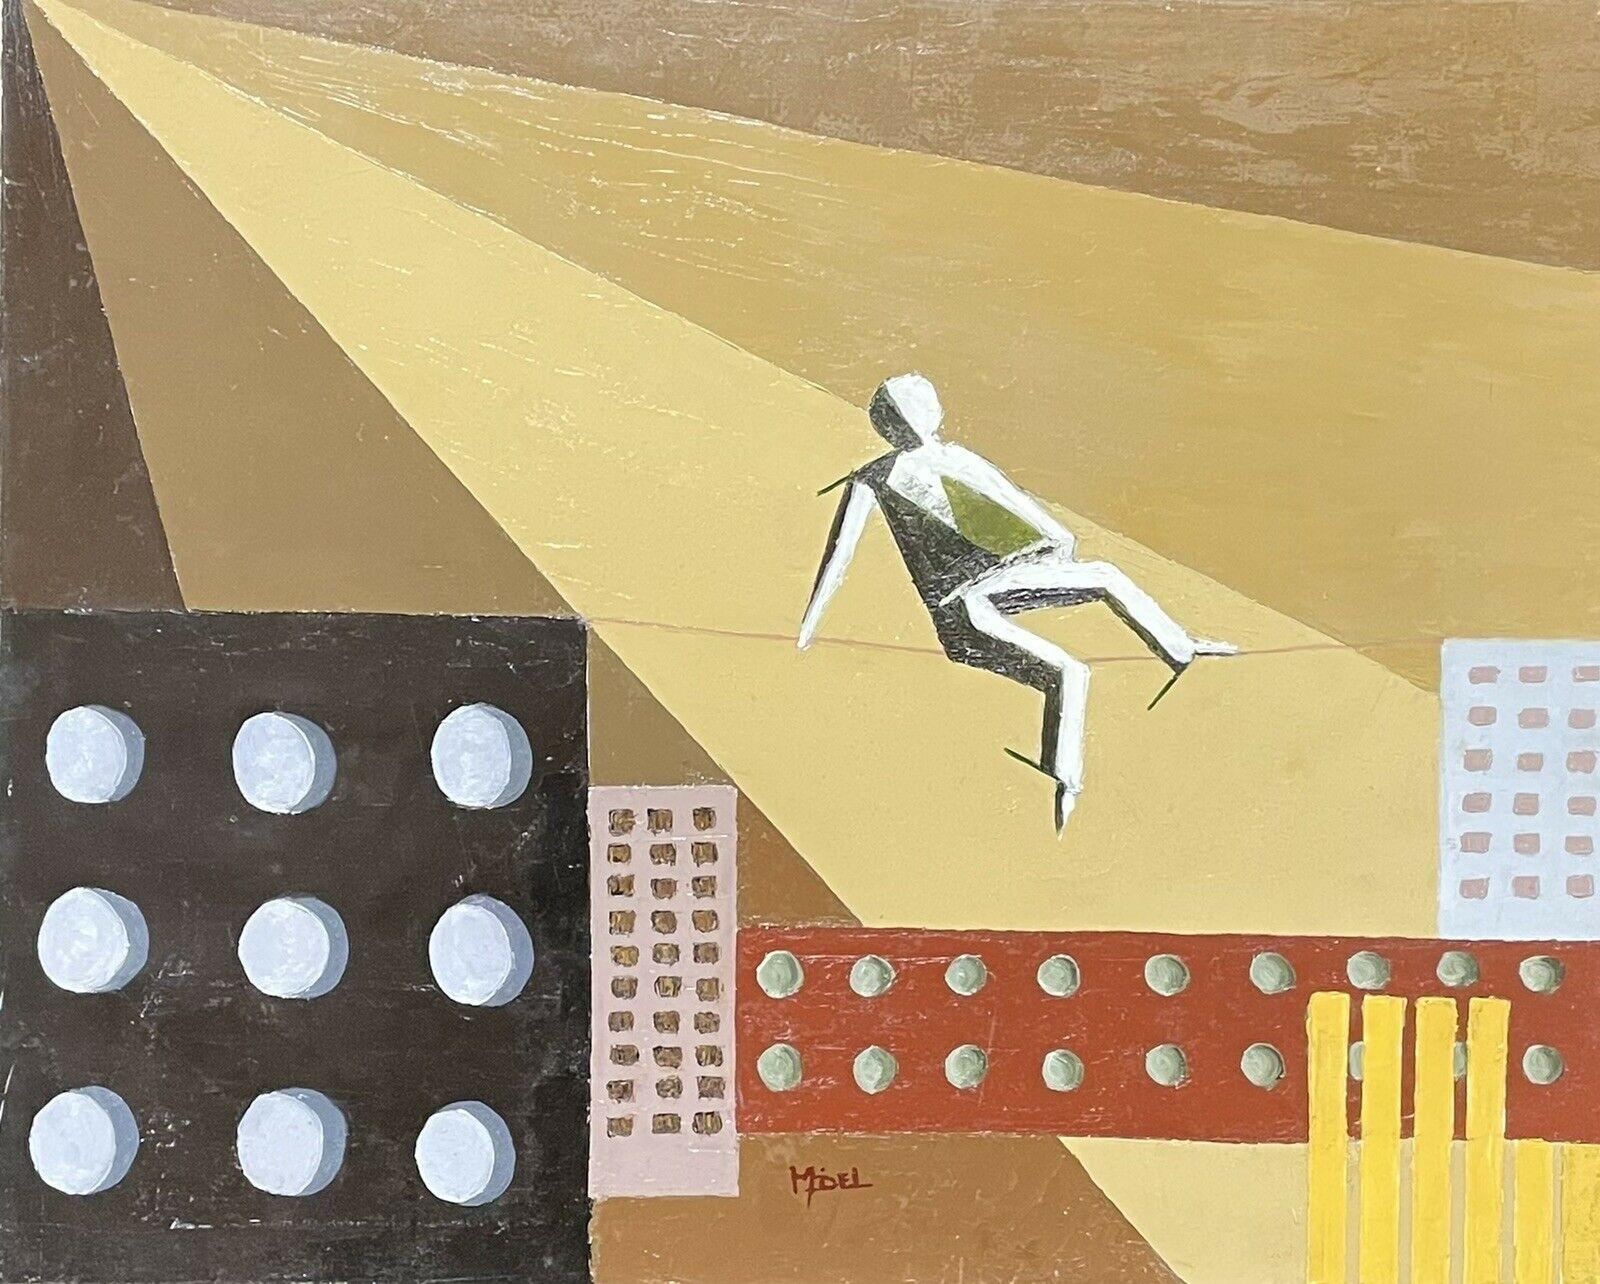 CONTEMPORARY FRENCH CUBIST ABSTRACT - GEOMETRIC COMPOSITION - TIGHTROPE WALKER